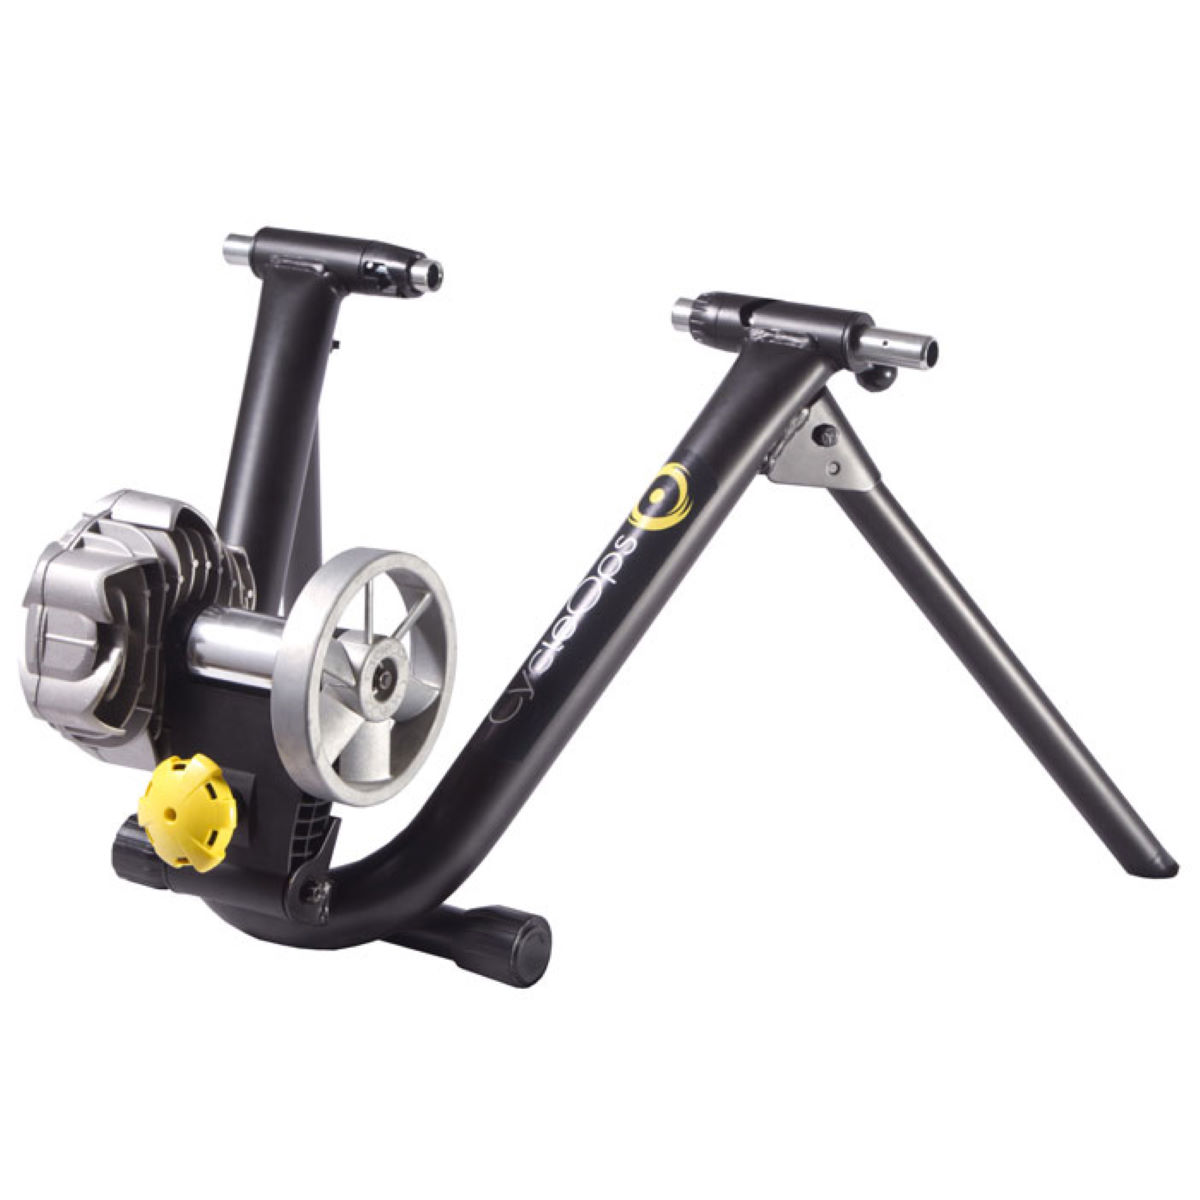 Home Trainer CycleOps Fluid 2 - Taille unique Noir/Jaune